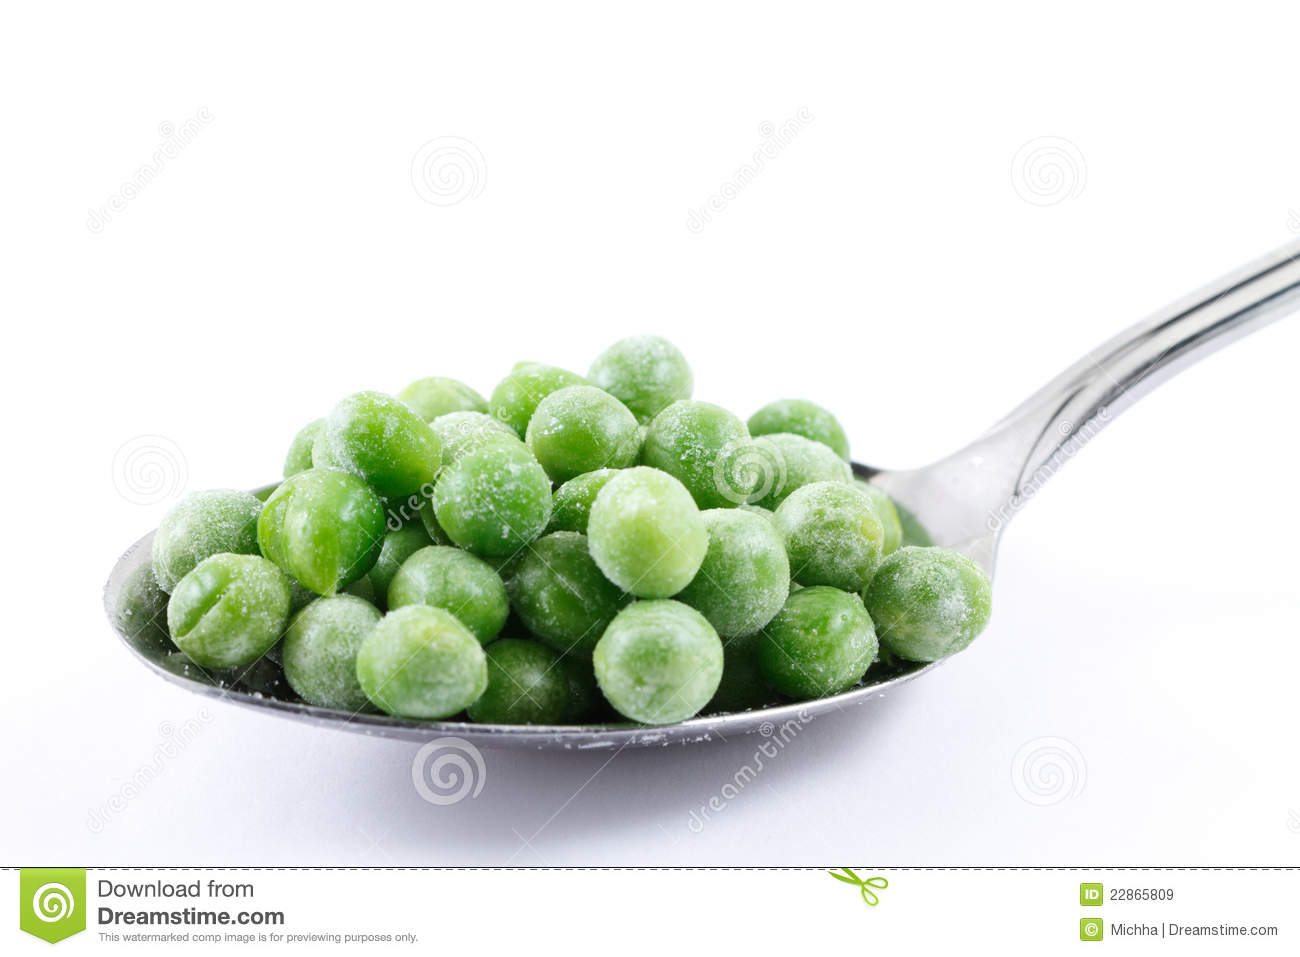 how to cook frozen peas